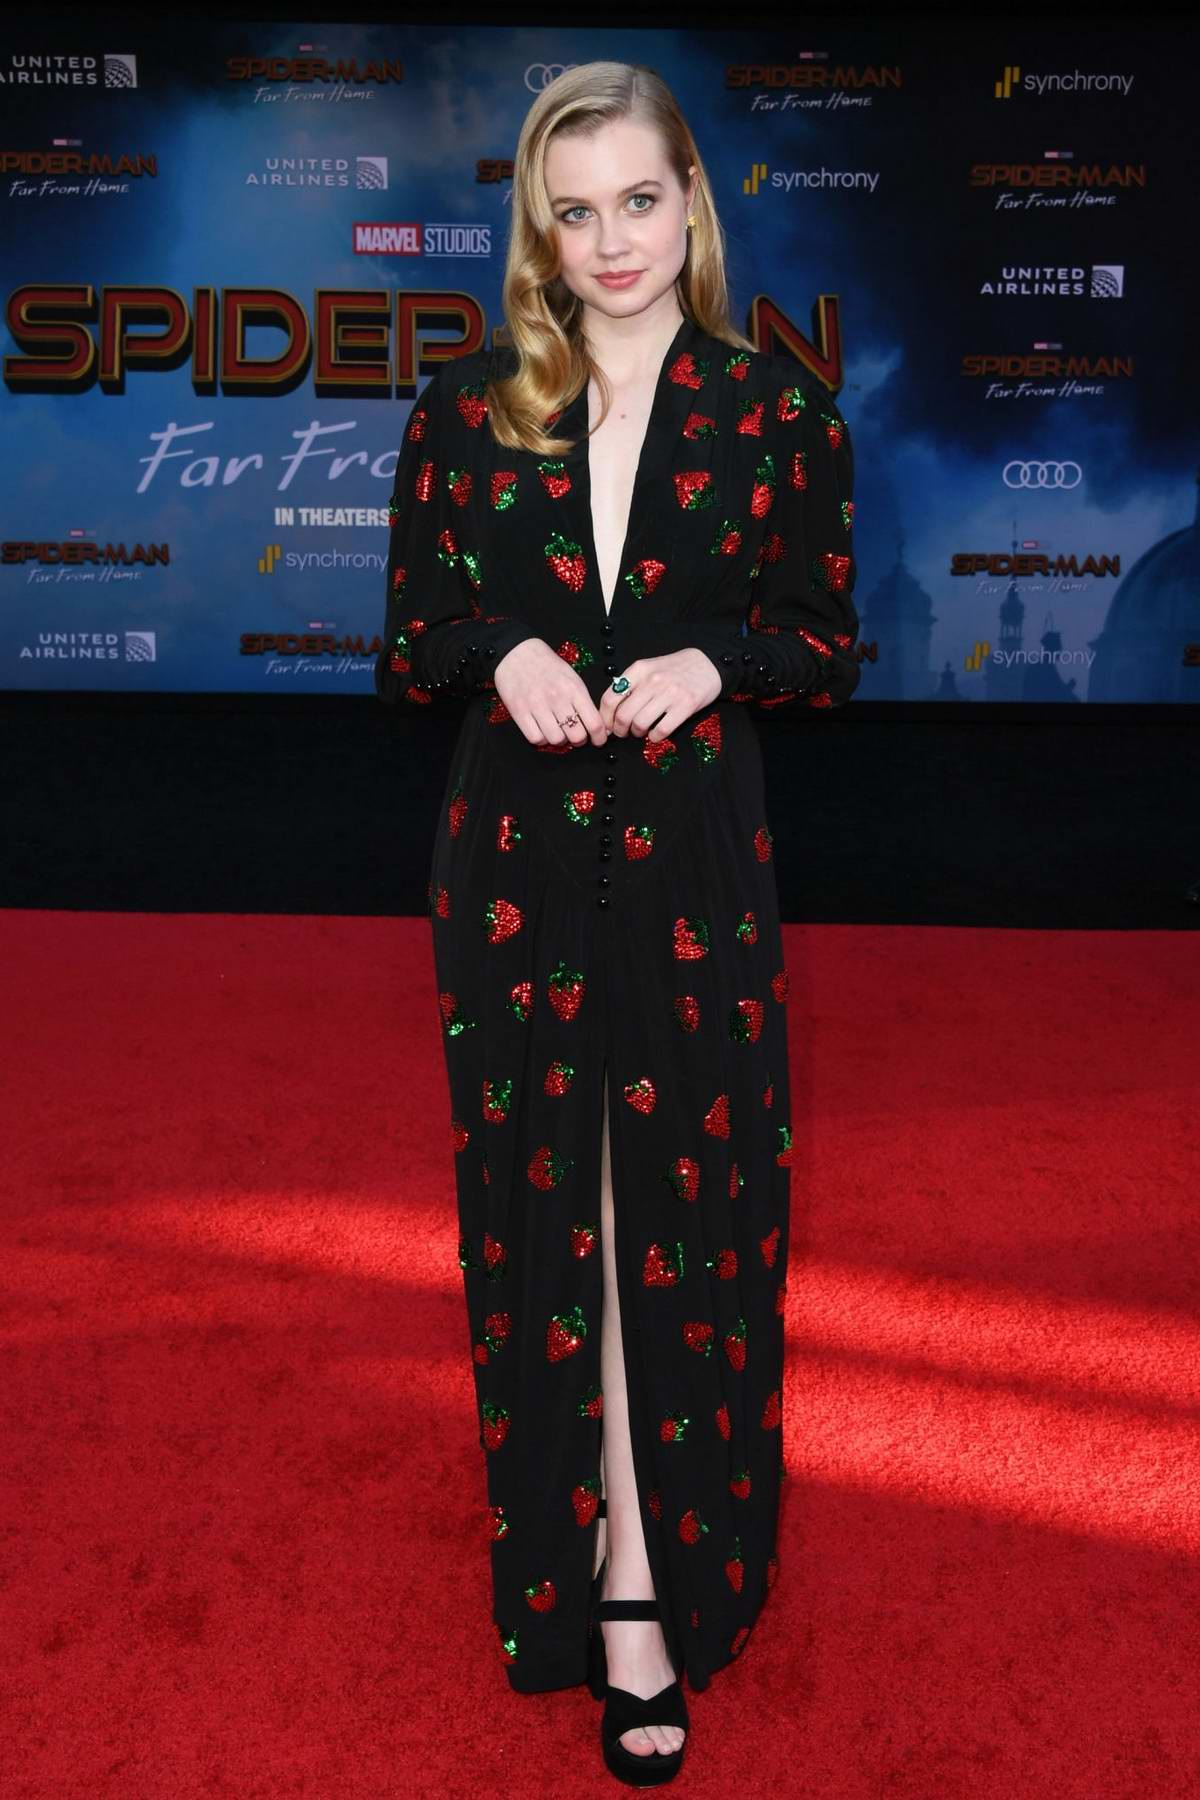 Angourie Rice attends the premiere of 'Spider-Man: Far From Home' at TCL Chinese Theatre in Hollywood, California